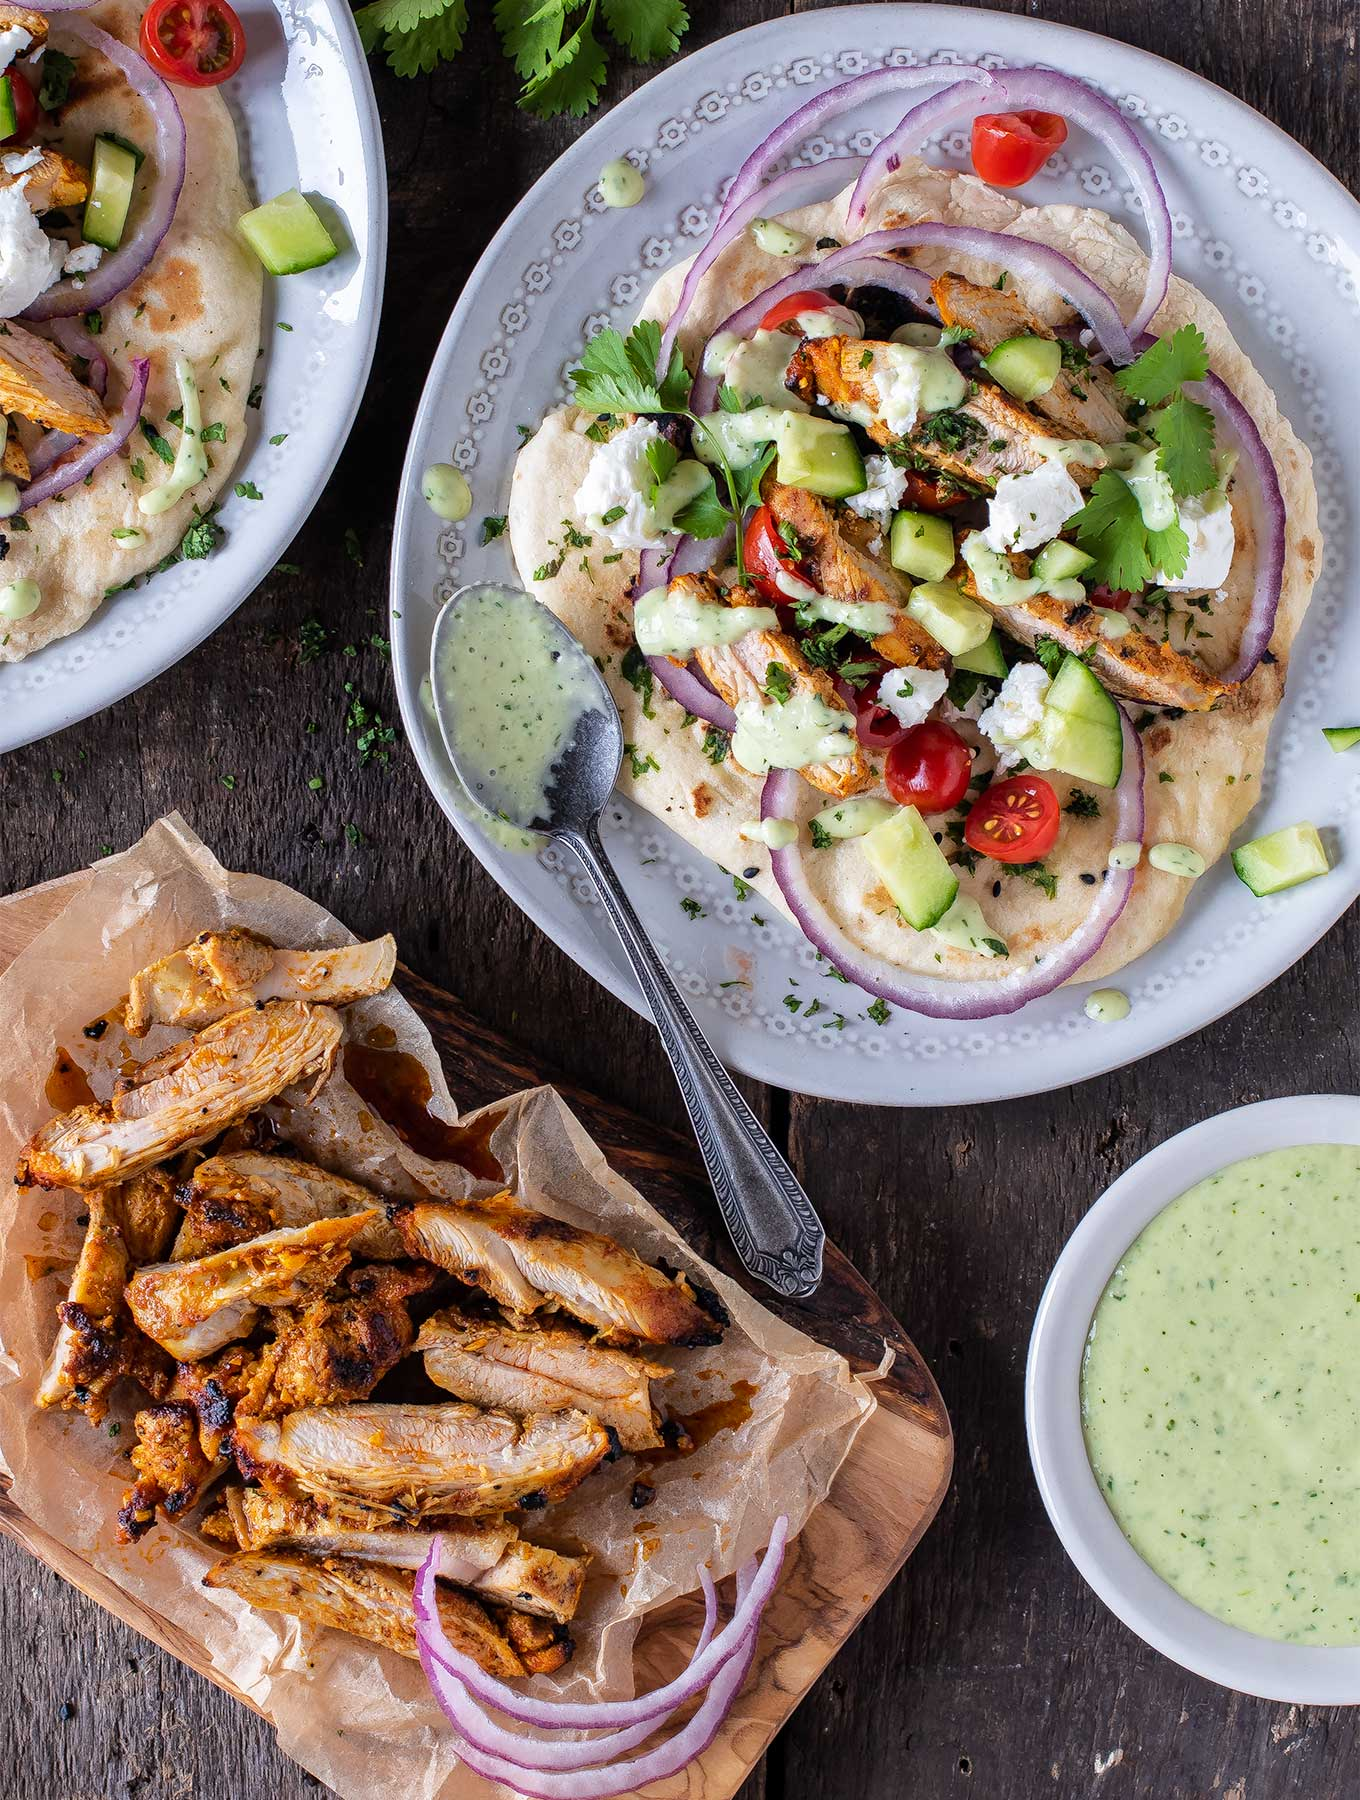 Chicken shawarma wraps on naan bread